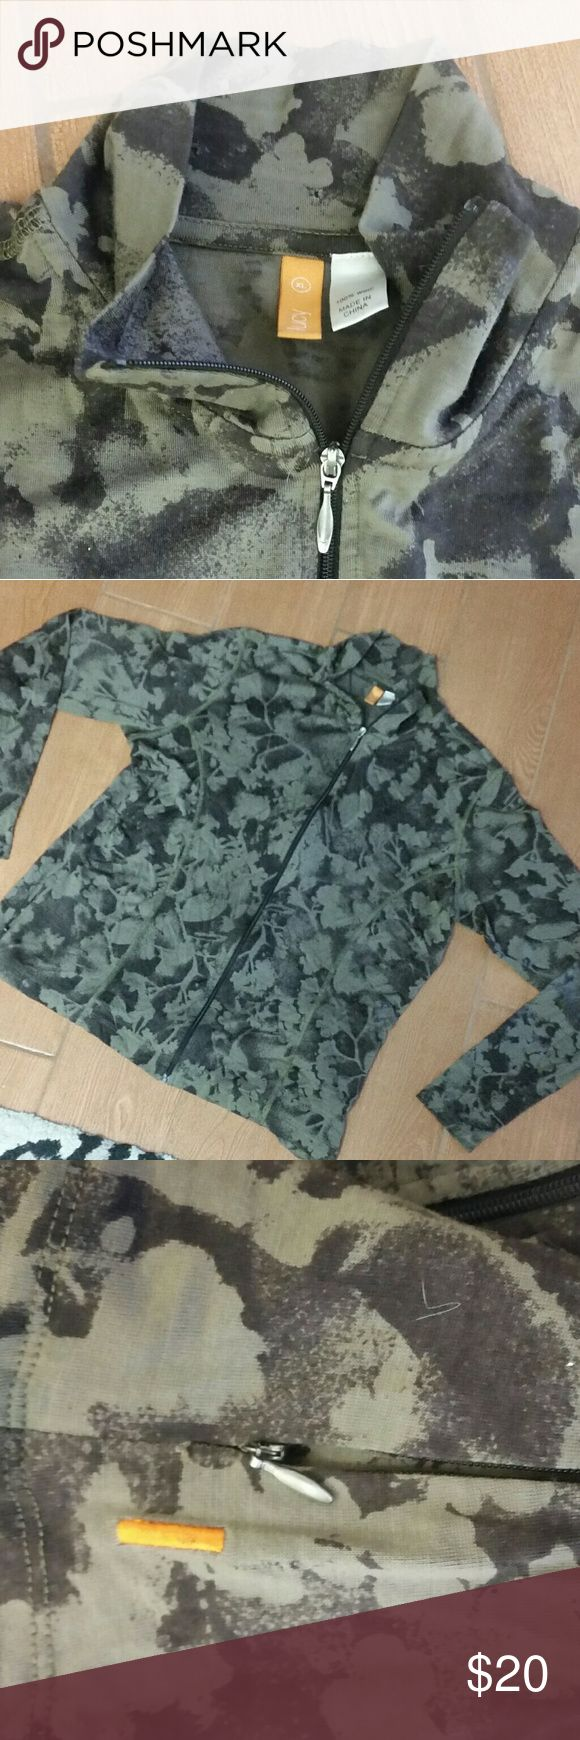 Lucy Athletic Wear 100% Wool Jacket size XL Lucy Athletic Wear 100% Wool Jacket size XL, Camouflage syle print lucy Jackets & Coats